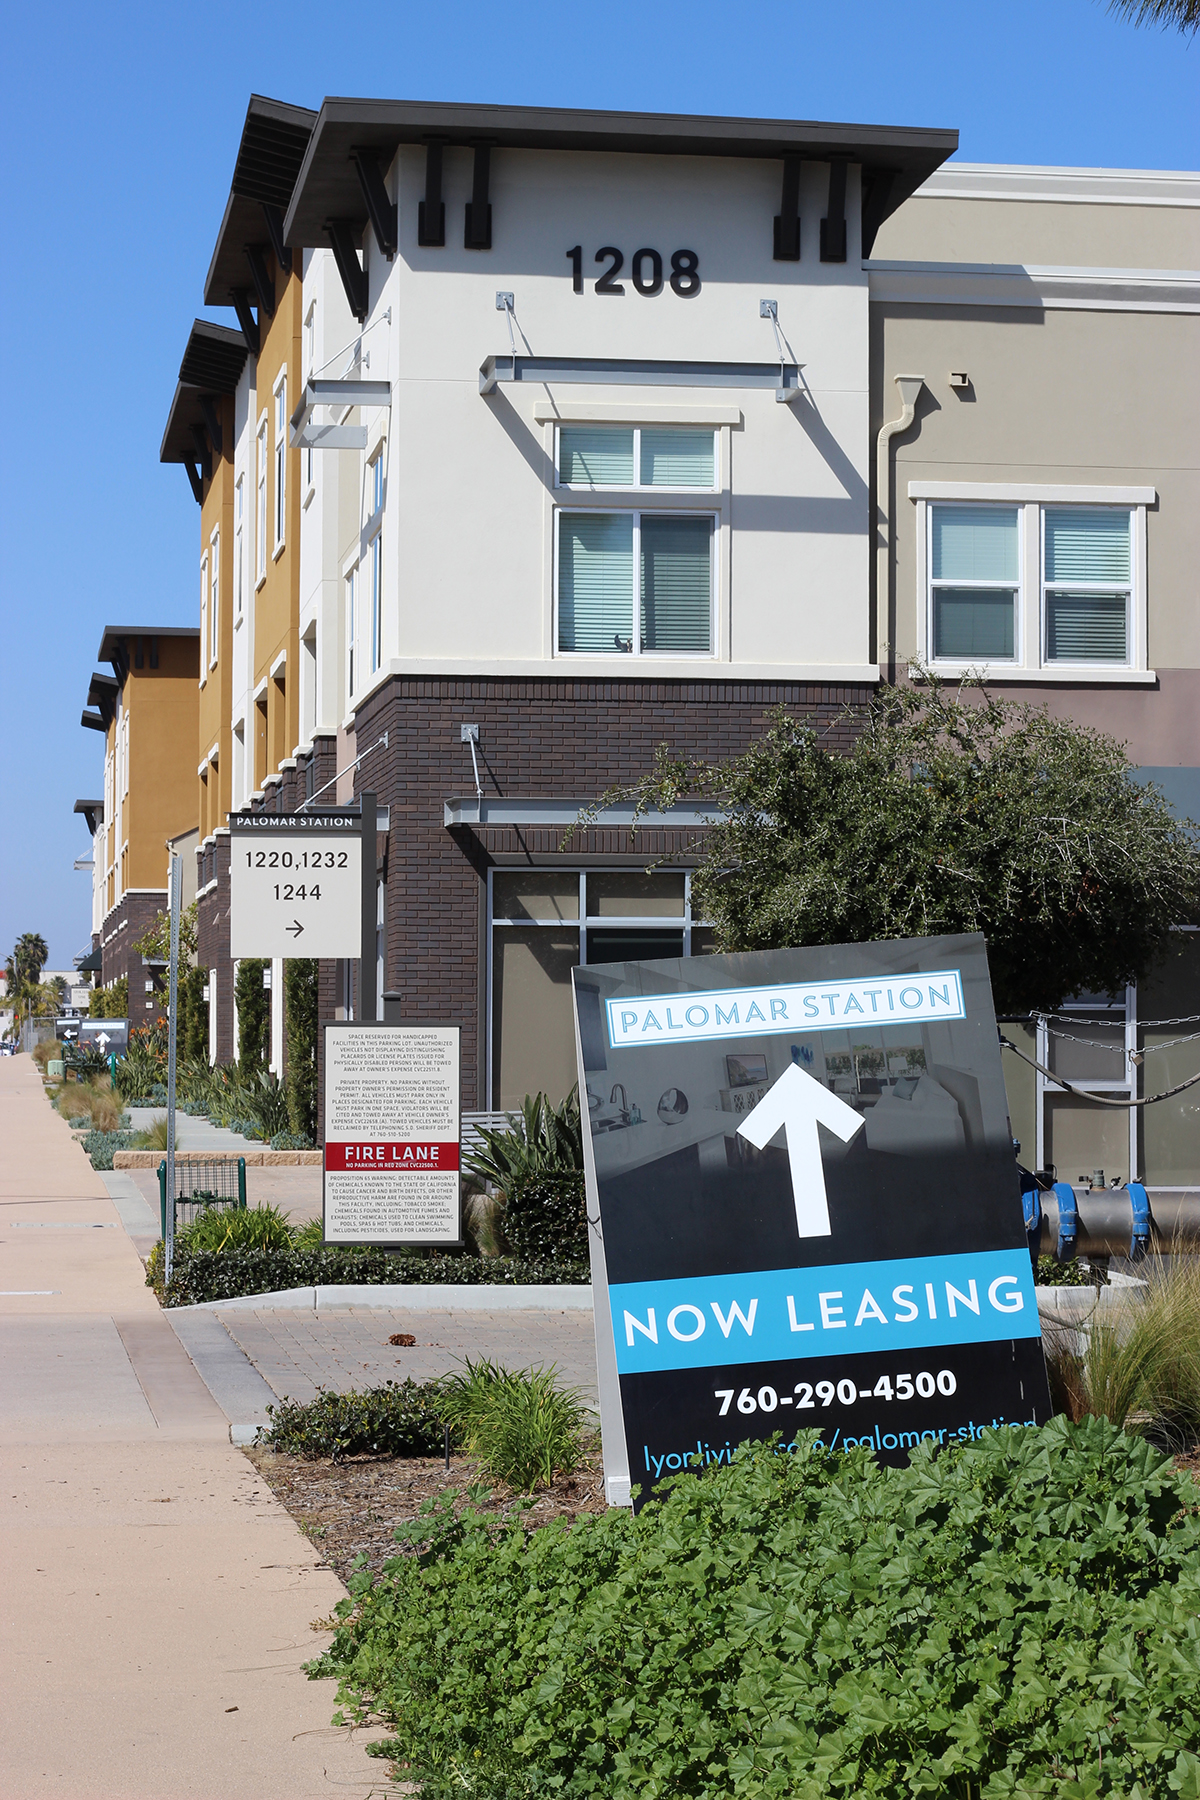 palomar station now leasing sign